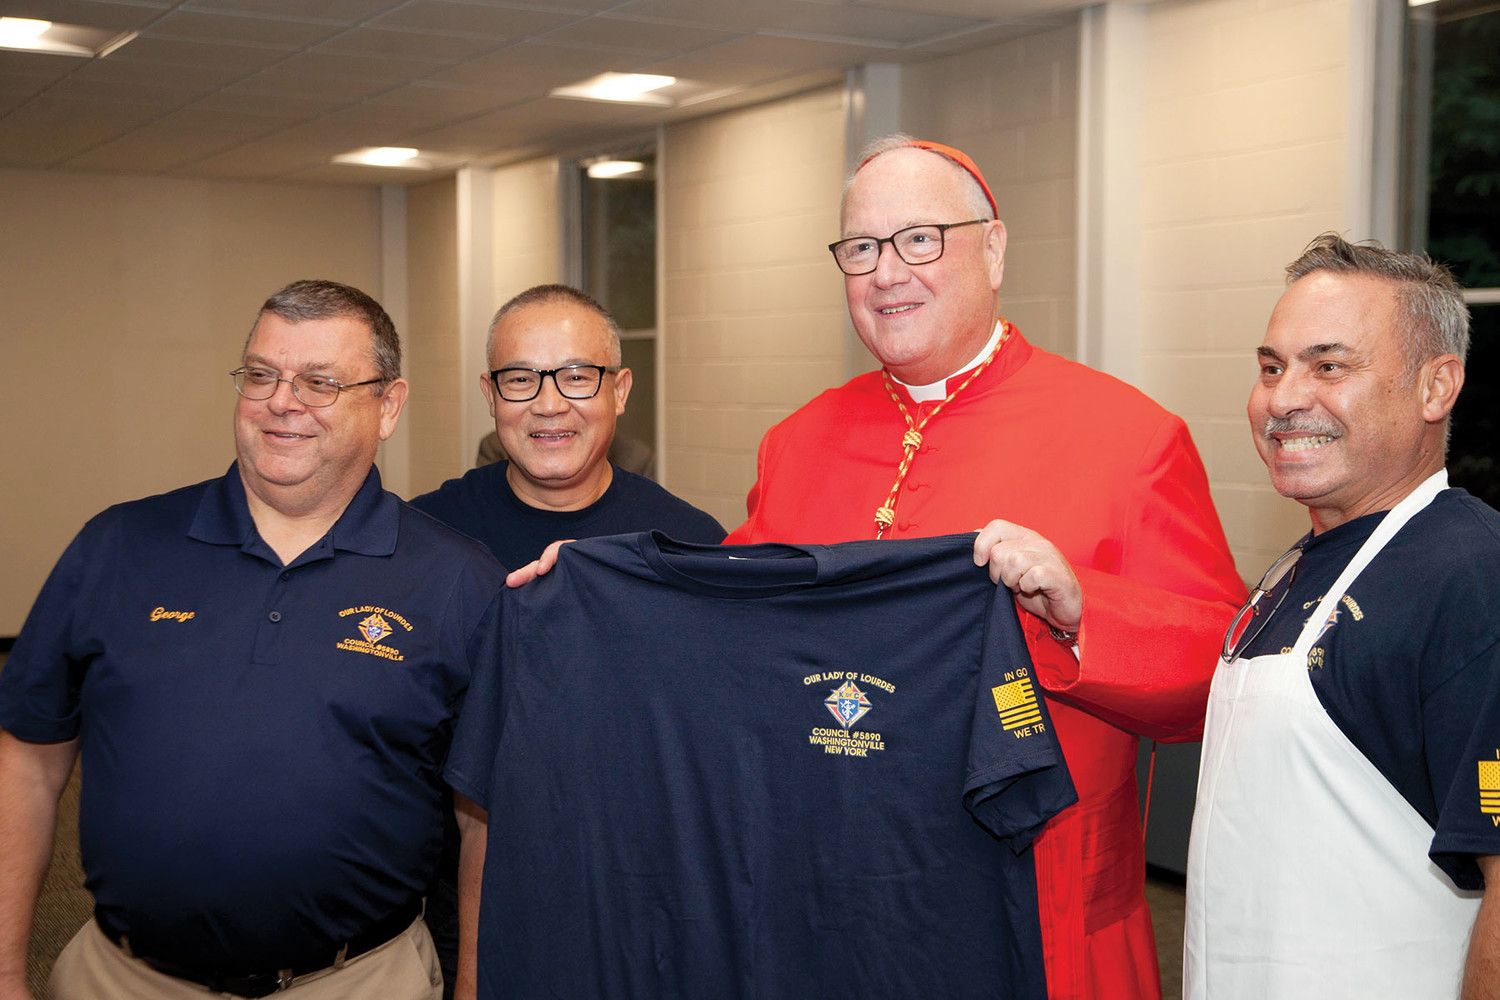 George Eismount, Lu Pham and Viz Cordero, left to right, make Cardinal Dolan an honorary member of the Our Lady of Lourdes Knights of Columbus Council 5890 at St. Mary's in Washingtonville Sept. 7. Cardinal Dolan visited the parish for vespers and to bless the new parish center.